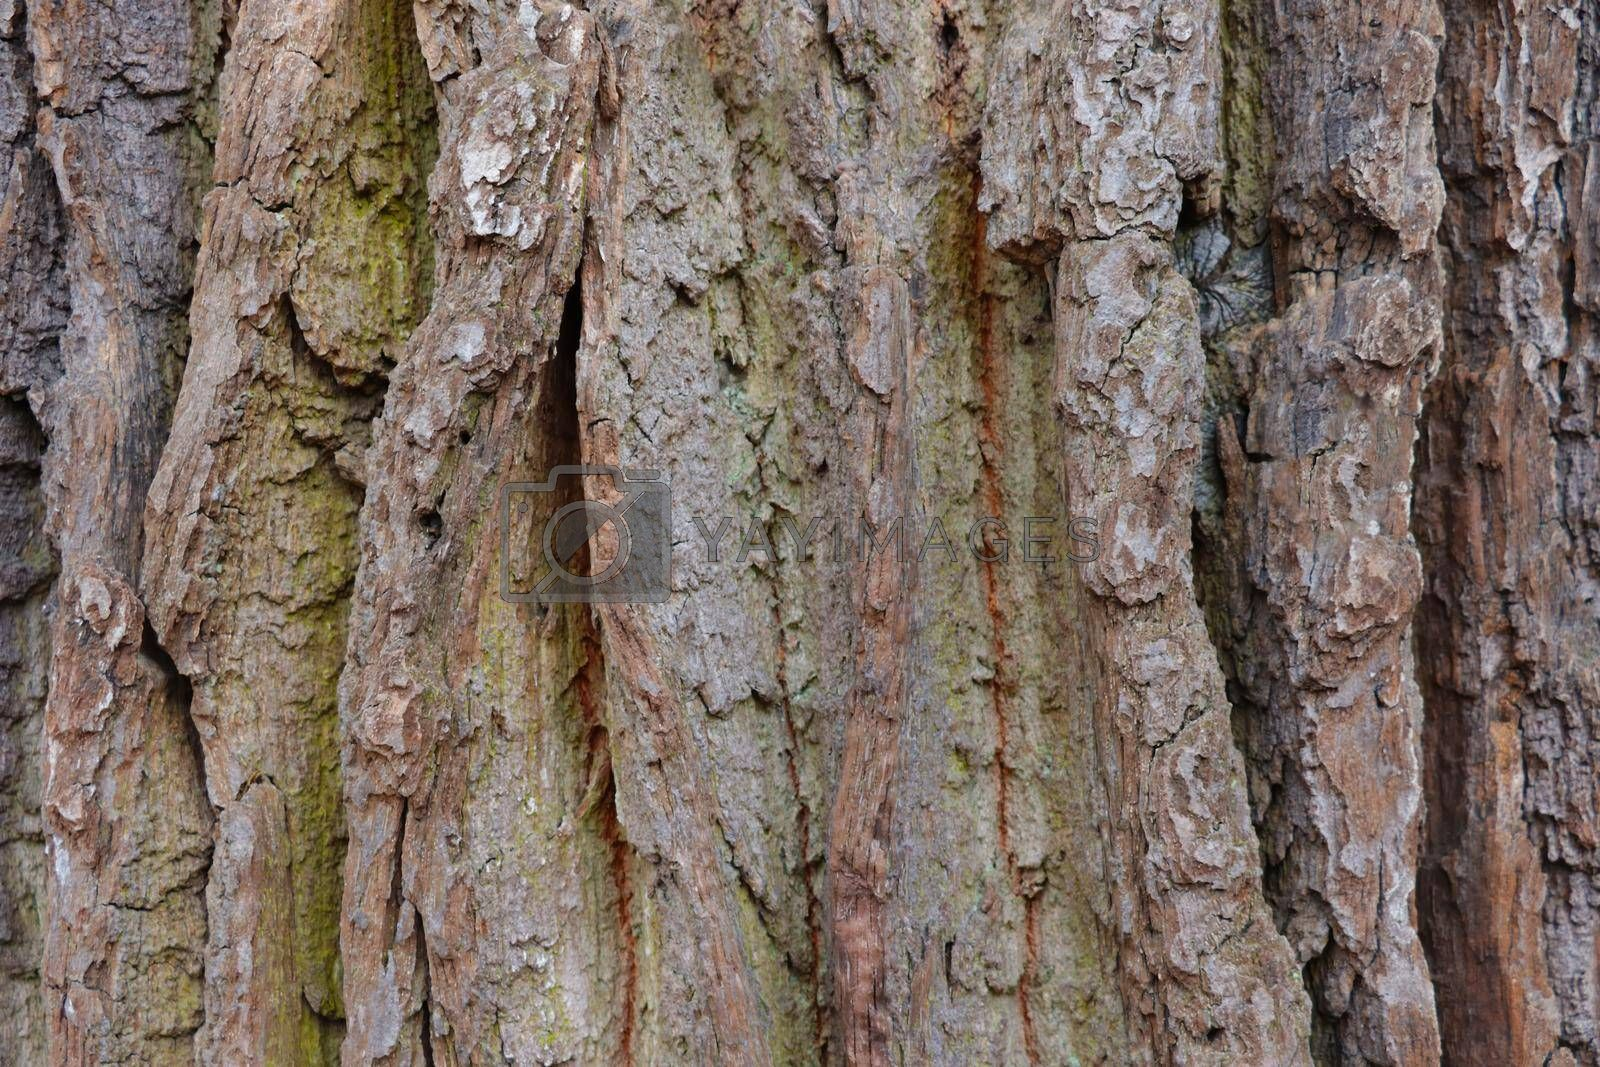 Royalty free image of Close-up on the bark and trunk of an old large tree, wood grain. by kip02kas